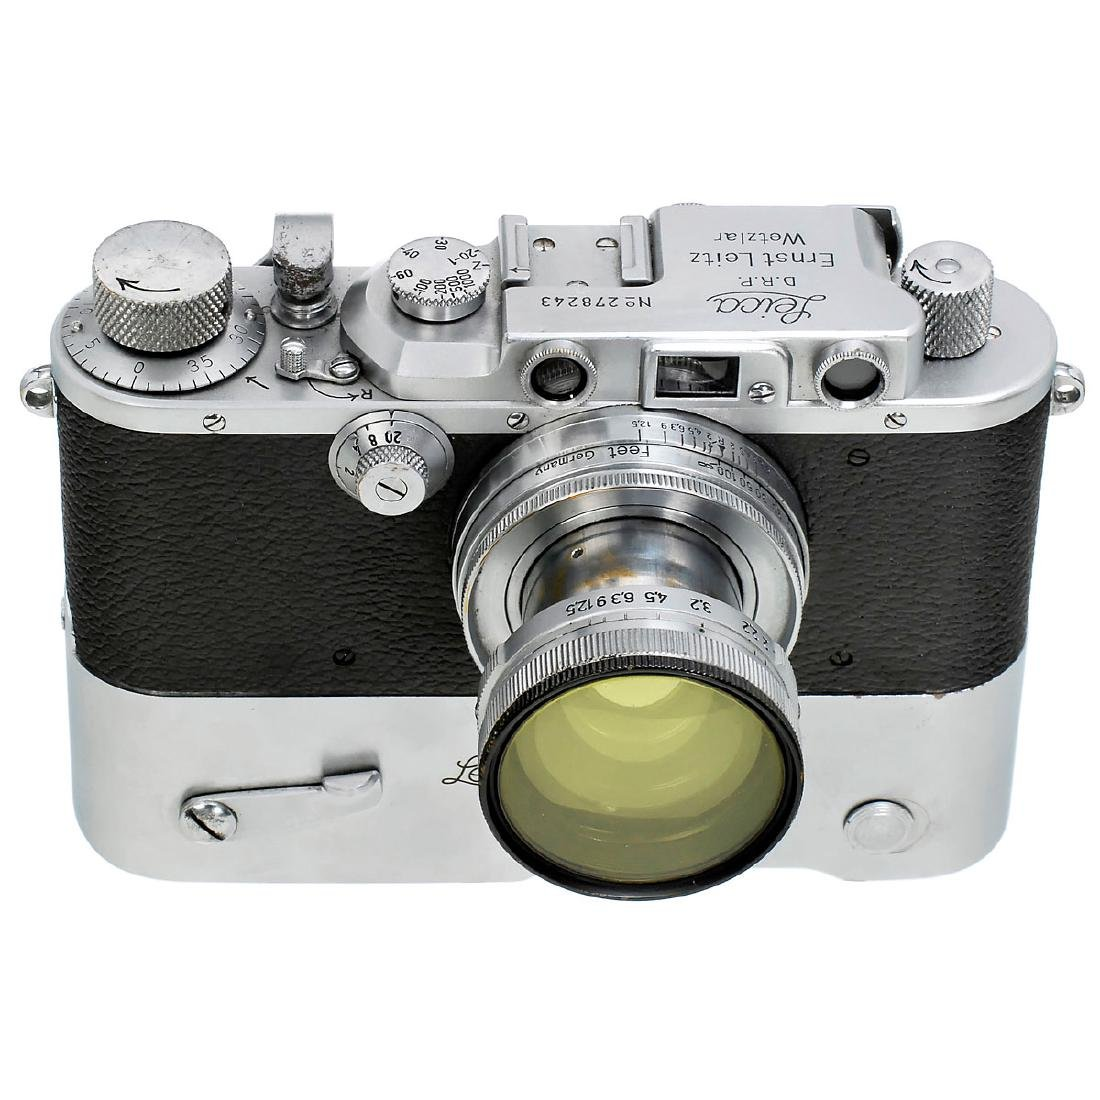 Leica IIIa with Summitar 2/5 cm and MOOLY